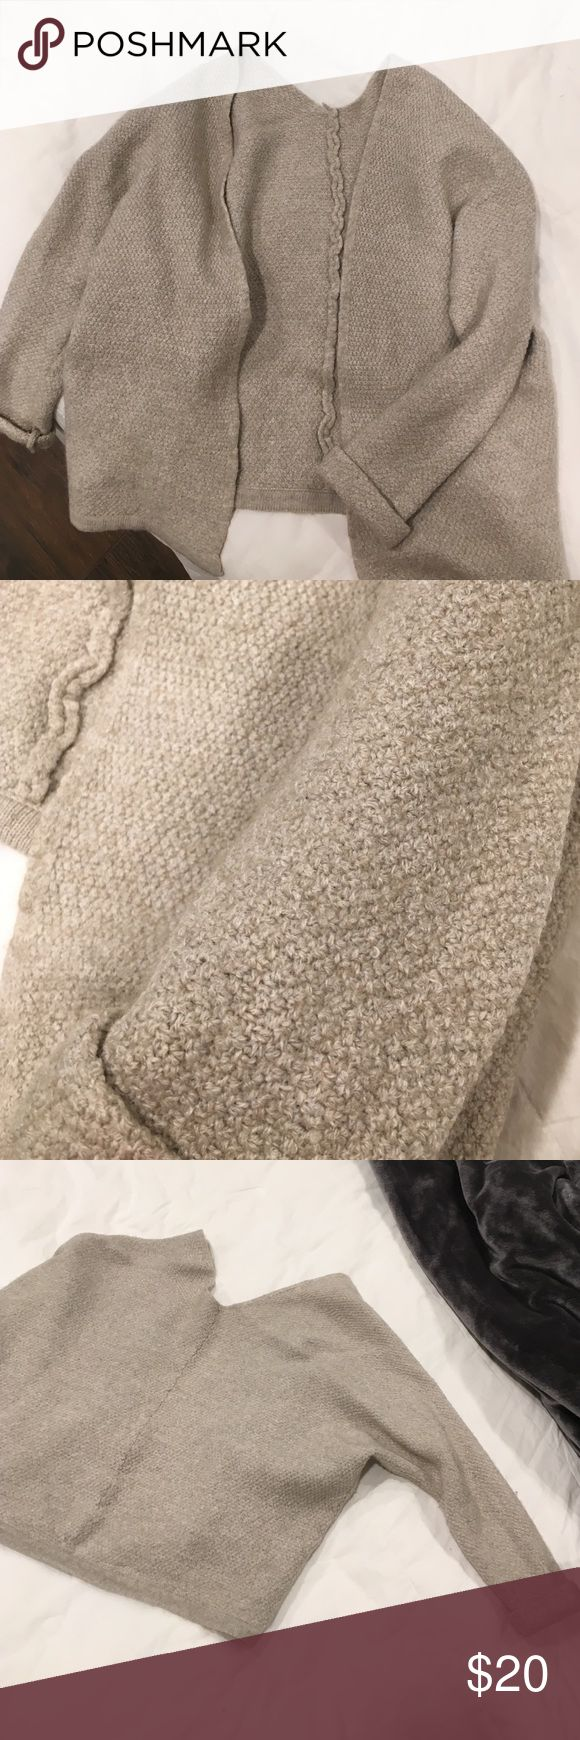 """Brandy Melville Cardigan Missing the Brandy Melville tag (thus price is compromised). Only worn once. Super comfortable. Fits """"one size"""", more like S/M. Brandy Melville Sweaters Cardigans"""